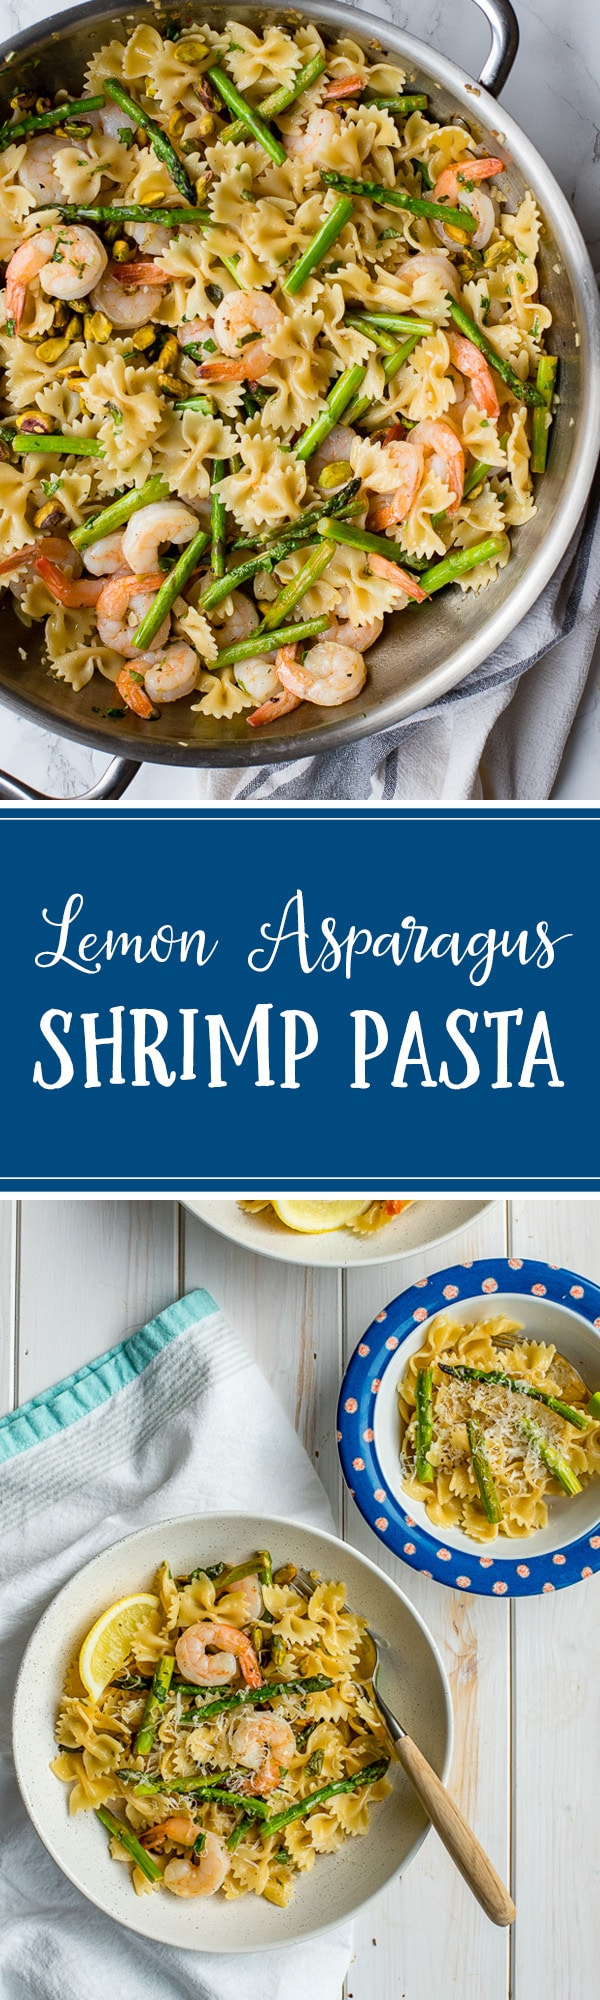 In less than 30 minutes you can prep this delicious, light, fresh lemon asparagus pasta. Shrimp and pistachios keep things interesting for a delicious weeknight meal! #shrimppasta #asparaguspasta #weeknightmeals